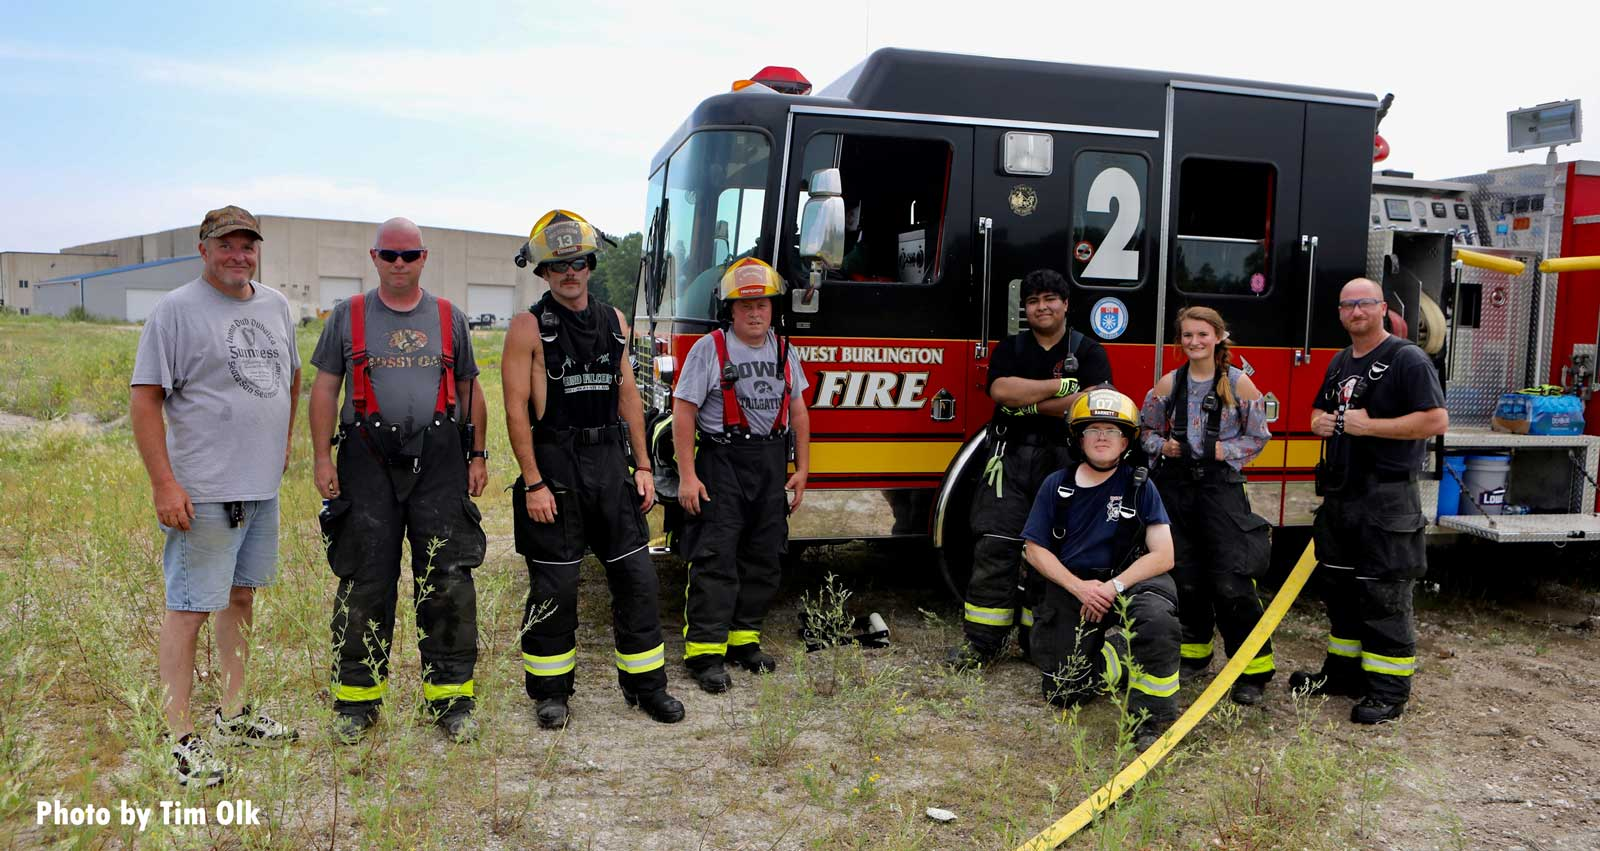 Firefighters in front of a fire truck